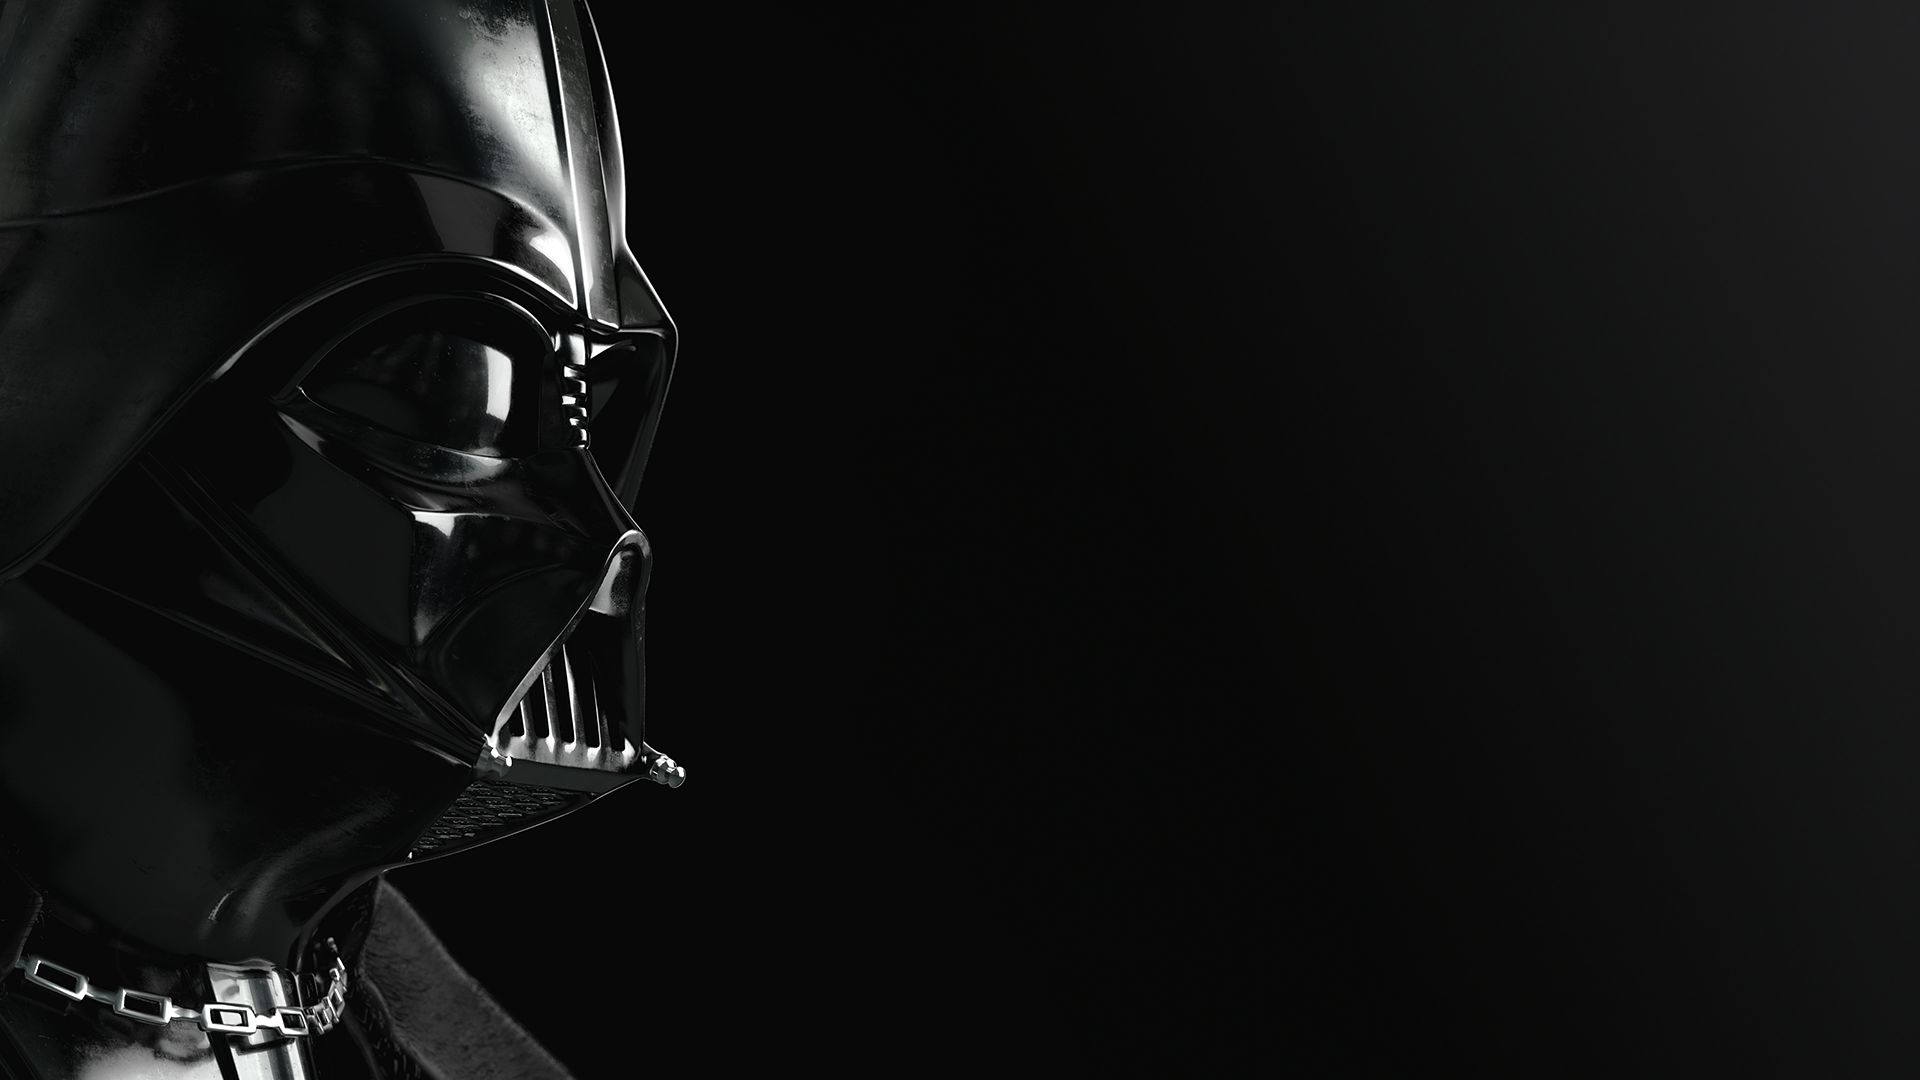 Darth Vader Hd Wallpapers Backgrounds Wallpaper Darth Vader Wallpaper Star Wars Wallpaper Darth Vader Hd Wallpaper